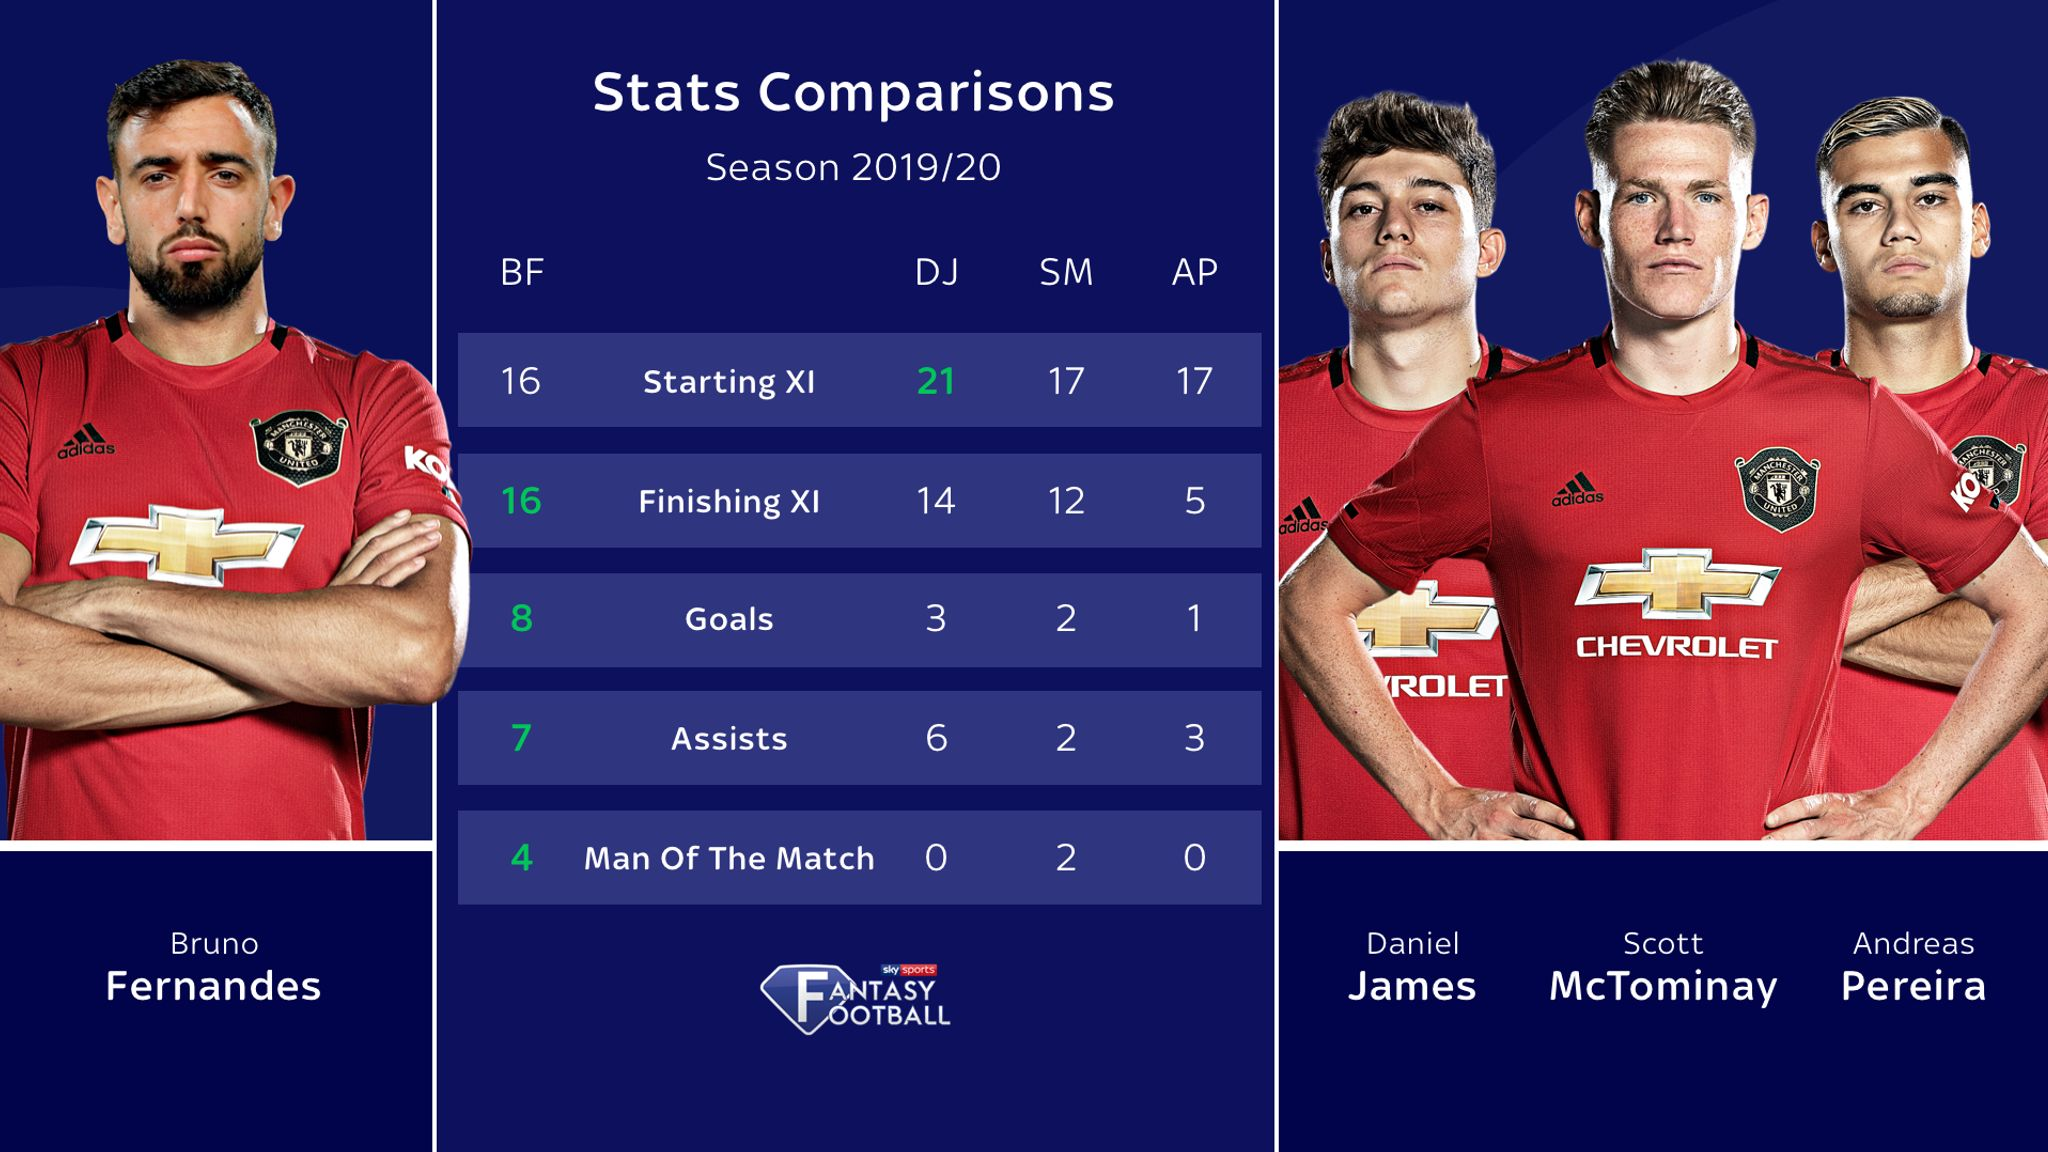 bruno fernandes stats compared to manchester united midfielders